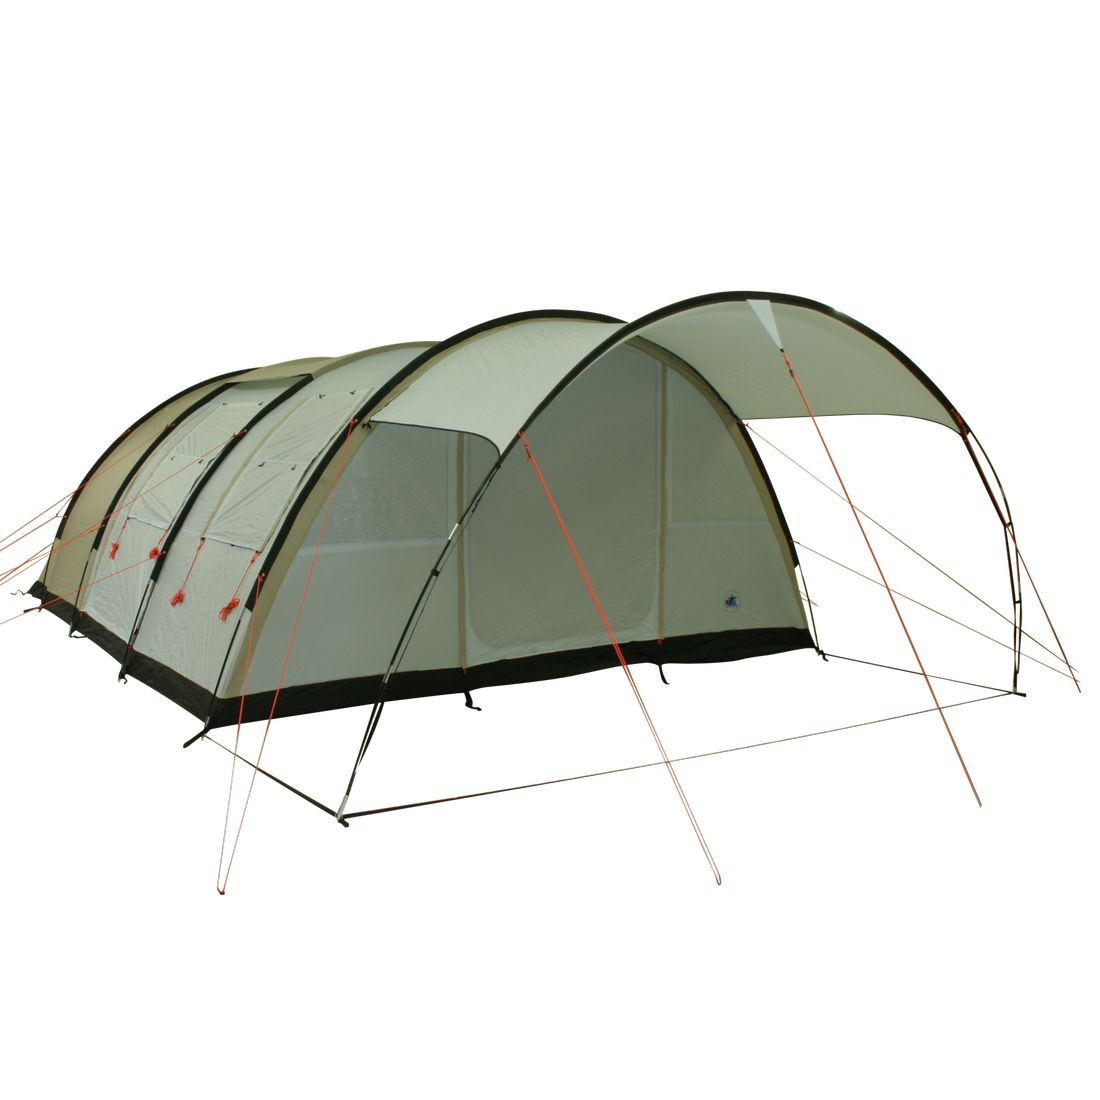 10T Outdoor Equipment - LEIGHTON 6 - Image 1  sc 1 st  C&ing-Outdoor.eu & Buy 10T Leighton 6 - 6-person tunnel tent with large canopy and full ...